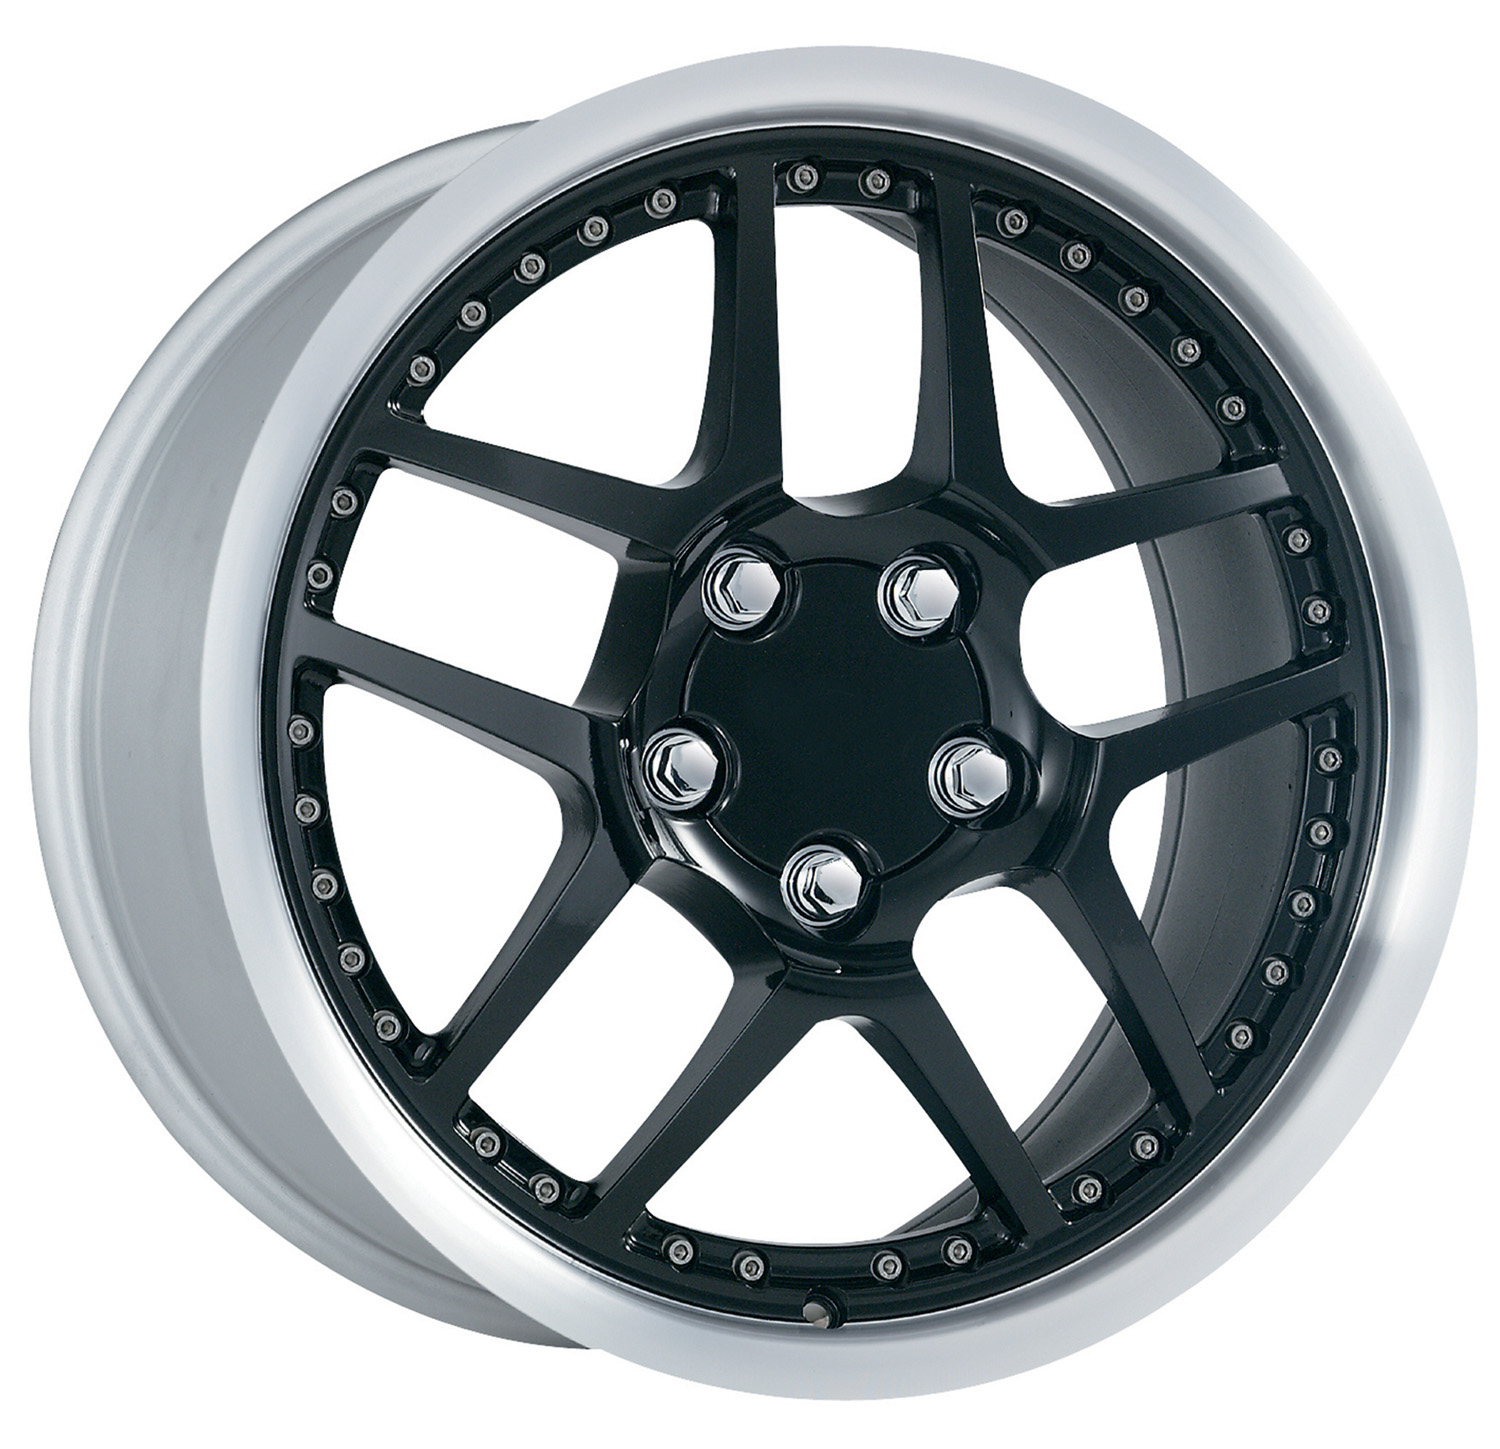 Chevrolet Corvette 1997-2004 17x8.5 5x4.75 +56 -C5 Z06 Style Wheel - Motorsport Black Machine Lip With Cap